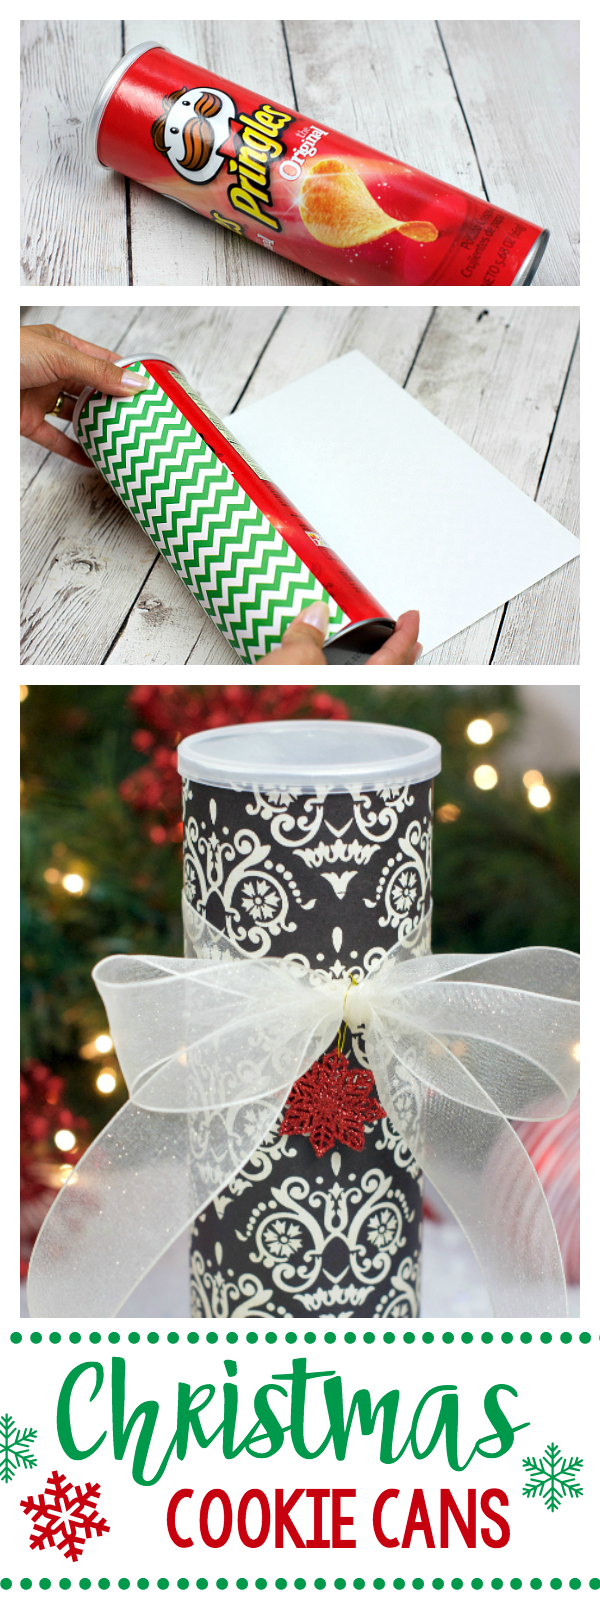 Neighbor Christmas Gift Ideas | Christmas Cookie Cans | Fun Squared